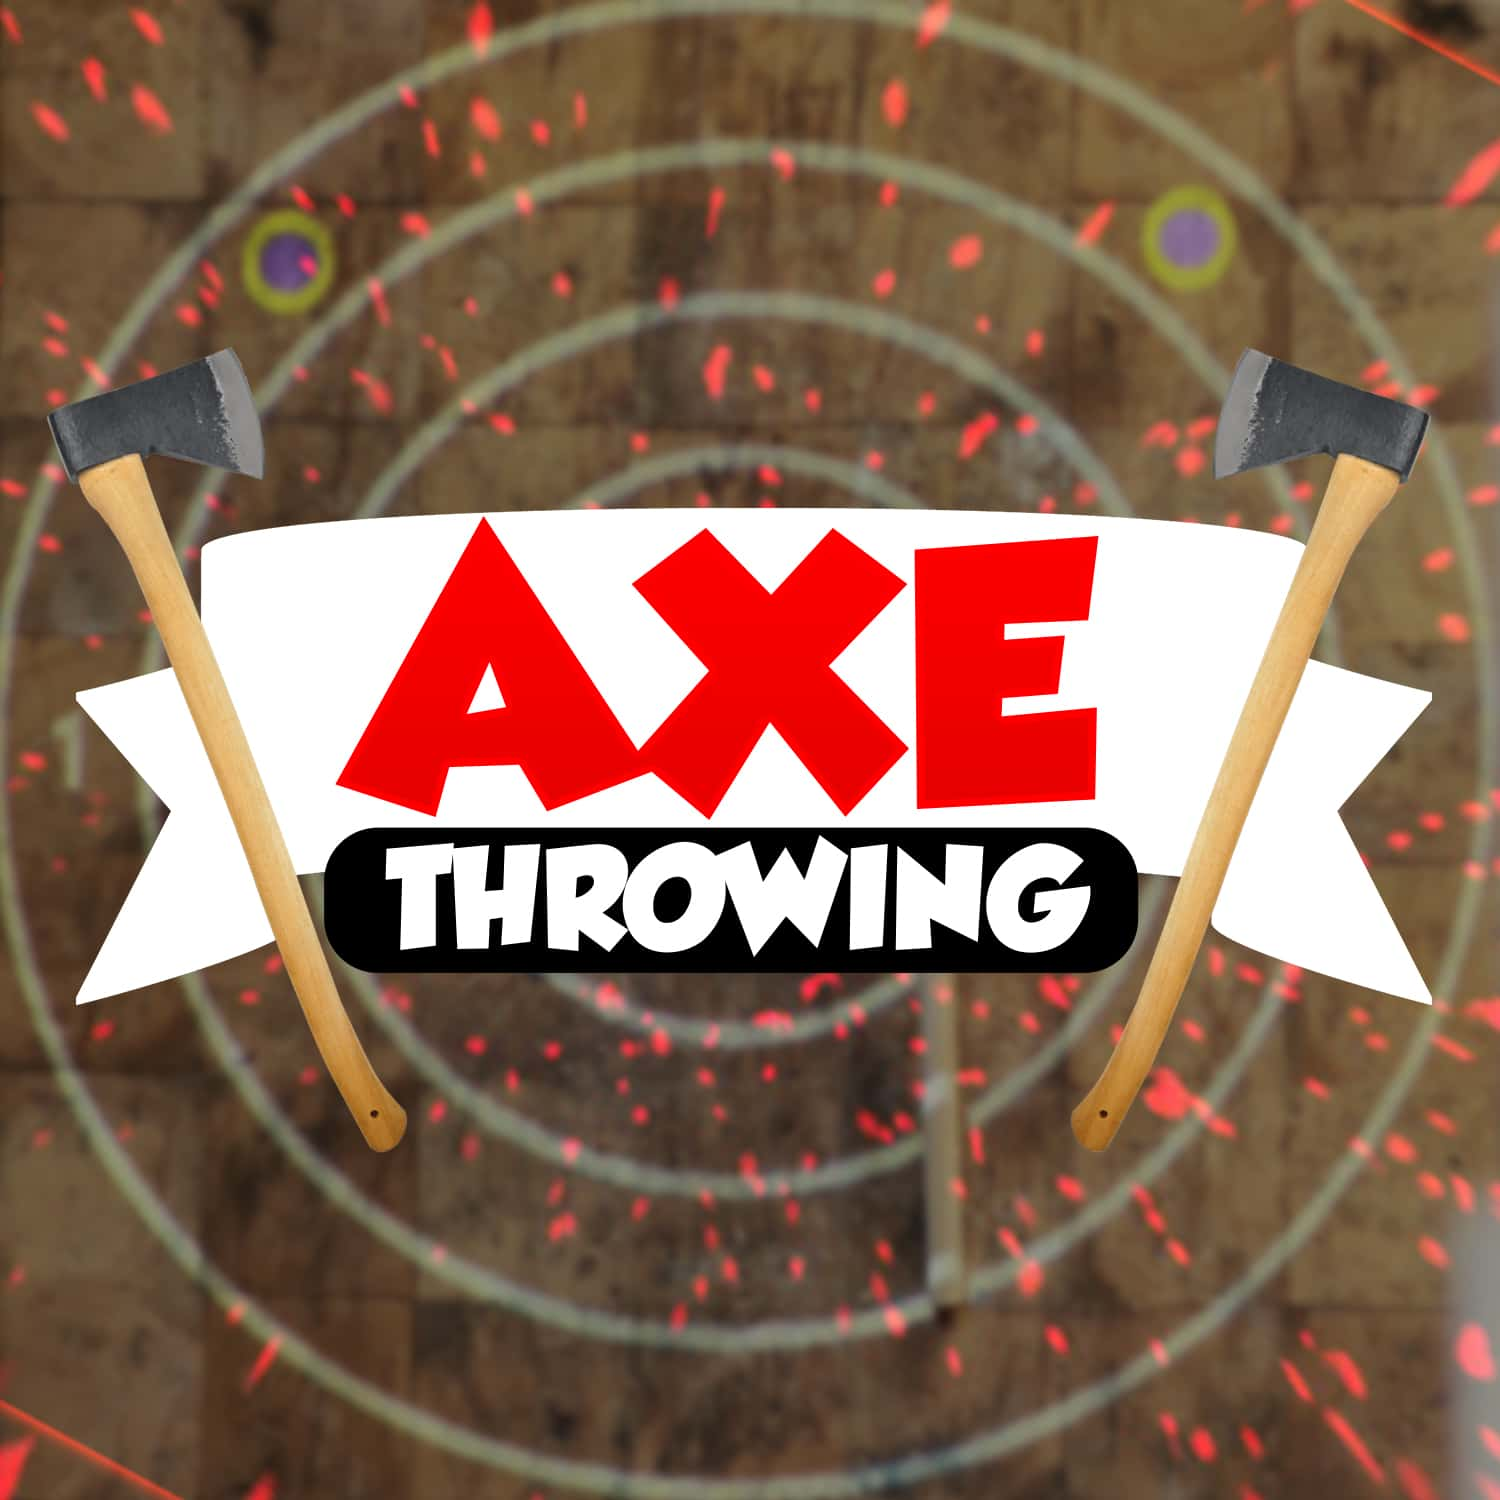 Axe throwing category